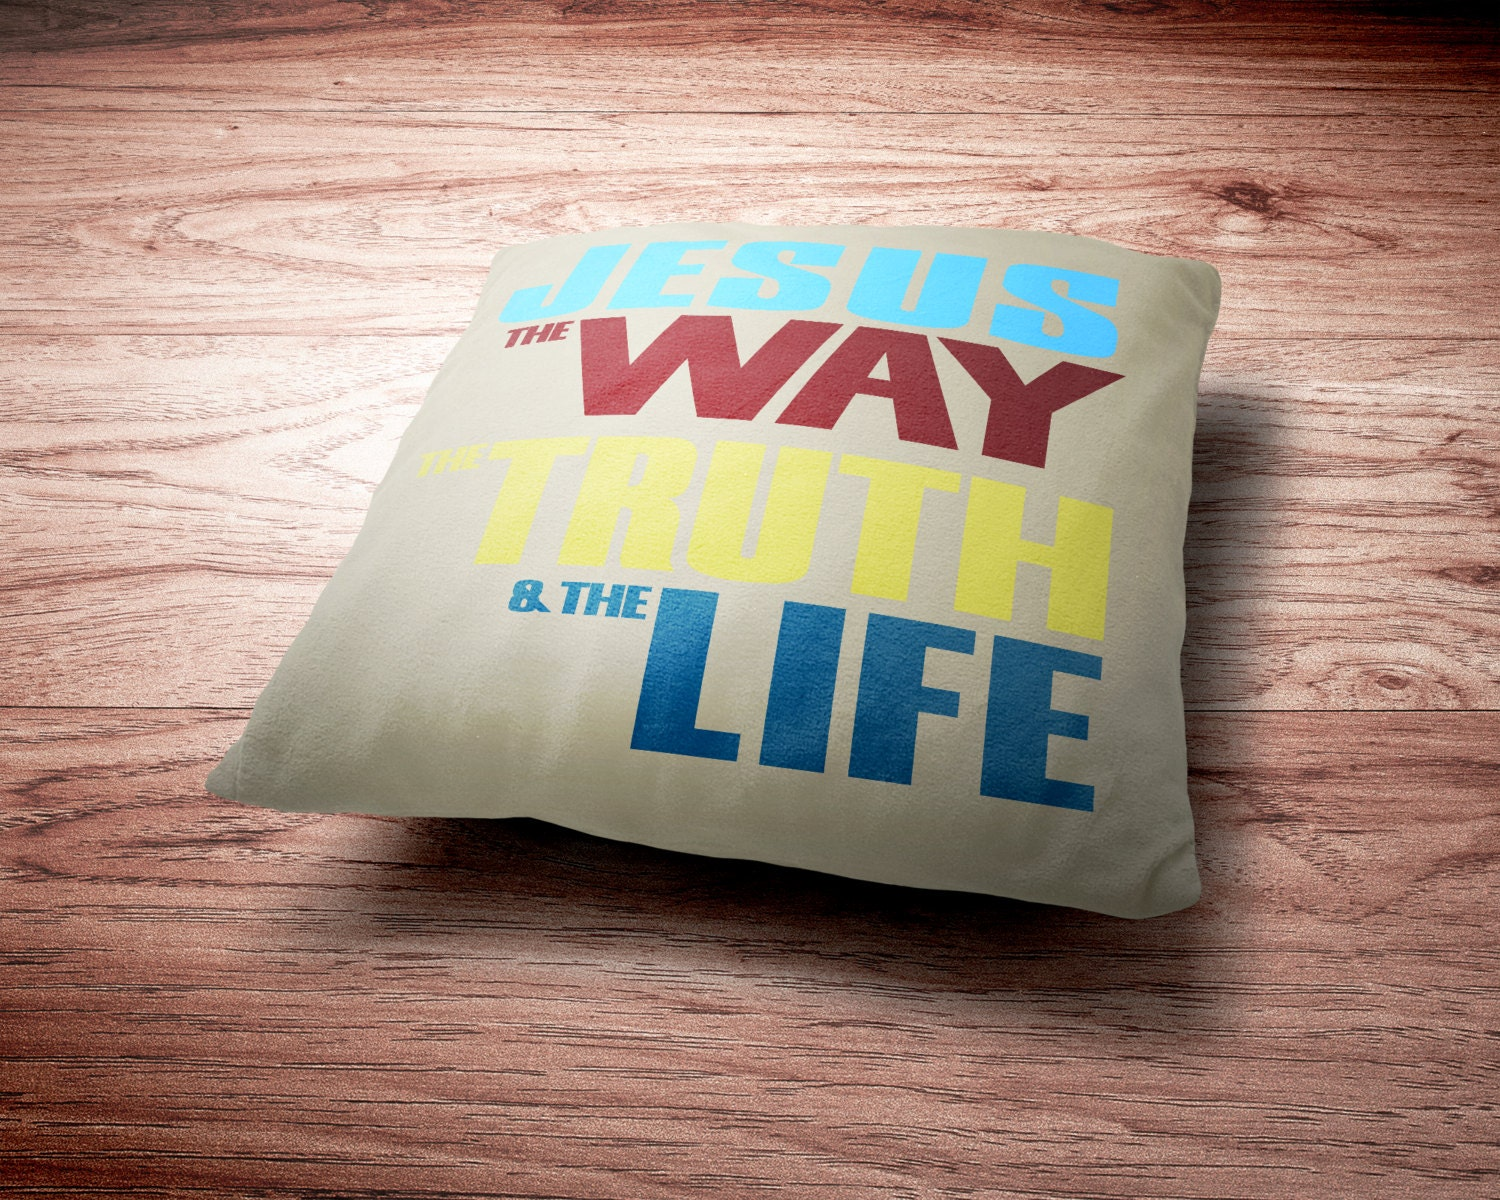 John 14:6 - Jesus The Way The Truth And The Life Throw Pillow - Christian Throw Pillow